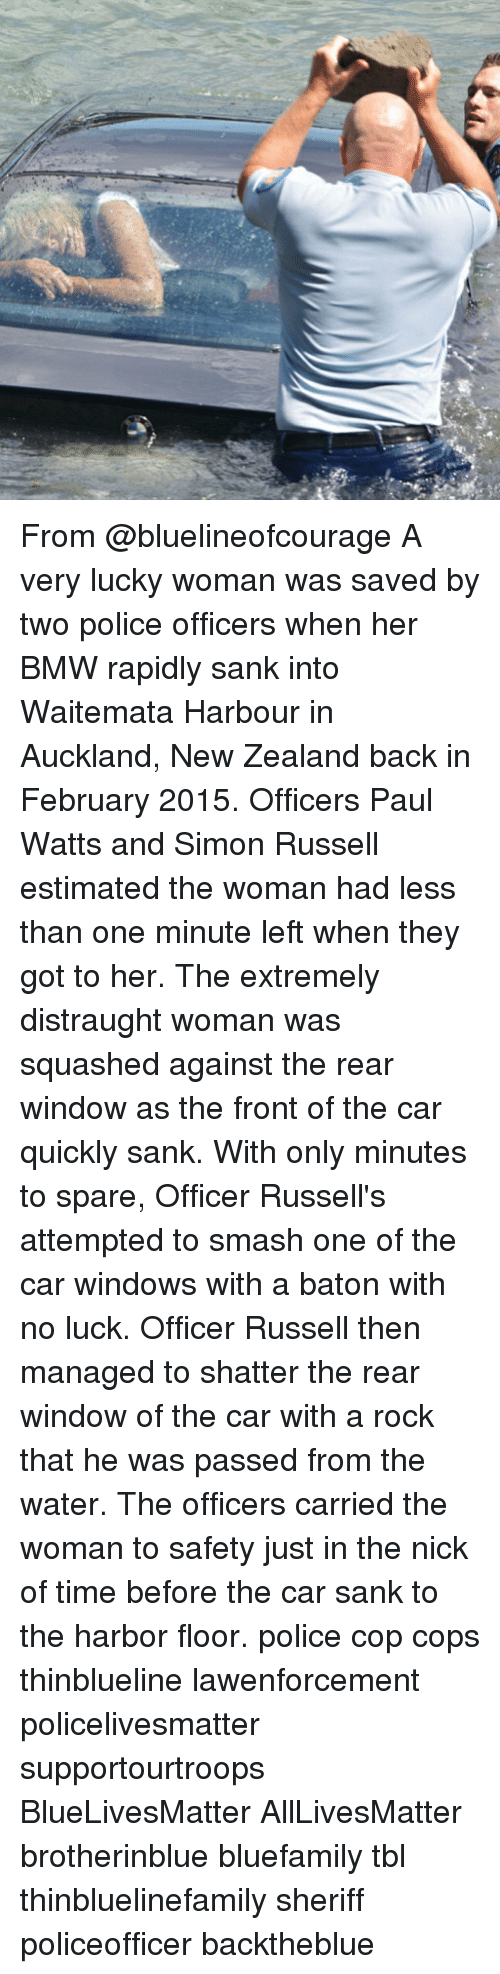 The Nick: From @bluelineofcourage A very lucky woman was saved by two police officers when her BMW rapidly sank into Waitemata Harbour in Auckland, New Zealand back in February 2015. Officers Paul Watts and Simon Russell estimated the woman had less than one minute left when they got to her. The extremely distraught woman was squashed against the rear window as the front of the car quickly sank. With only minutes to spare, Officer Russell's attempted to smash one of the car windows with a baton with no luck. Officer Russell then managed to shatter the rear window of the car with a rock that he was passed from the water. The officers carried the woman to safety just in the nick of time before the car sank to the harbor floor. police cop cops thinblueline lawenforcement policelivesmatter supportourtroops BlueLivesMatter AllLivesMatter brotherinblue bluefamily tbl thinbluelinefamily sheriff policeofficer backtheblue